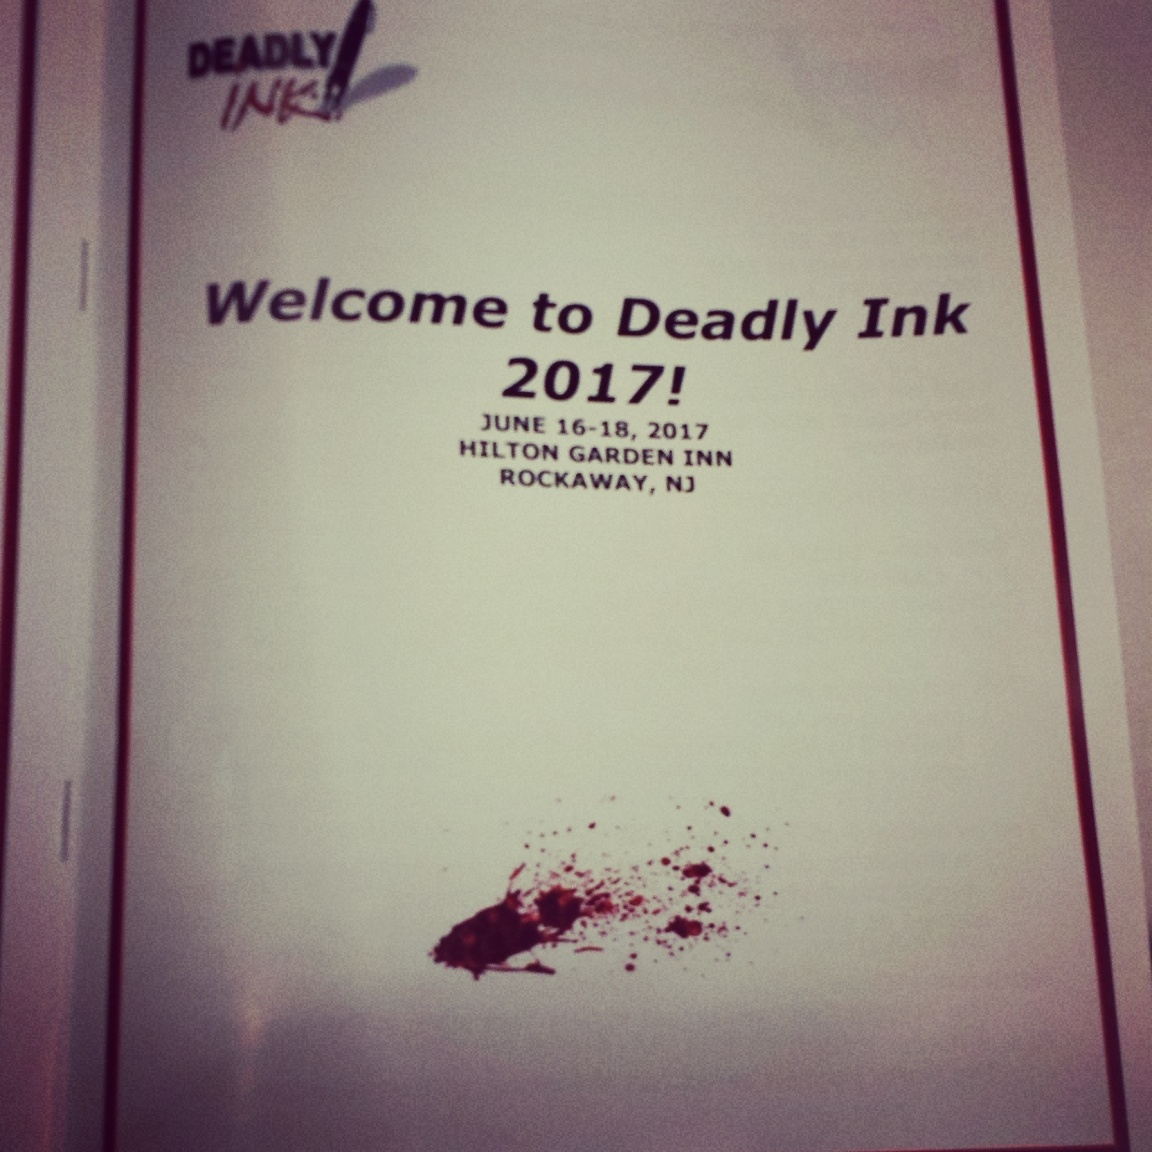 2017 Deadly Ink program